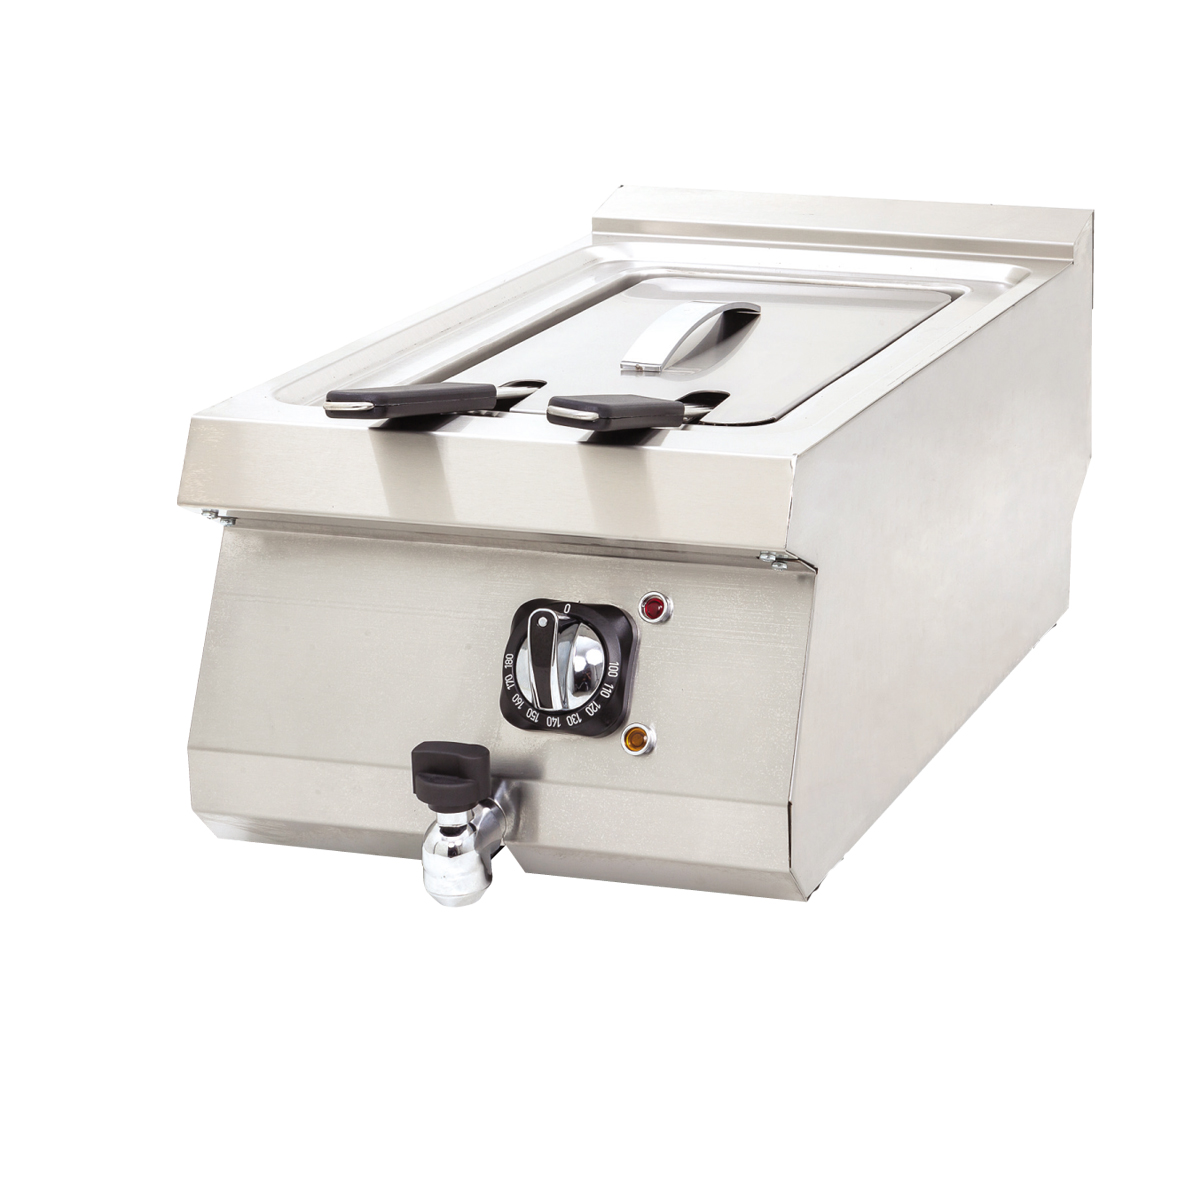 Electric Fryer - 40x60